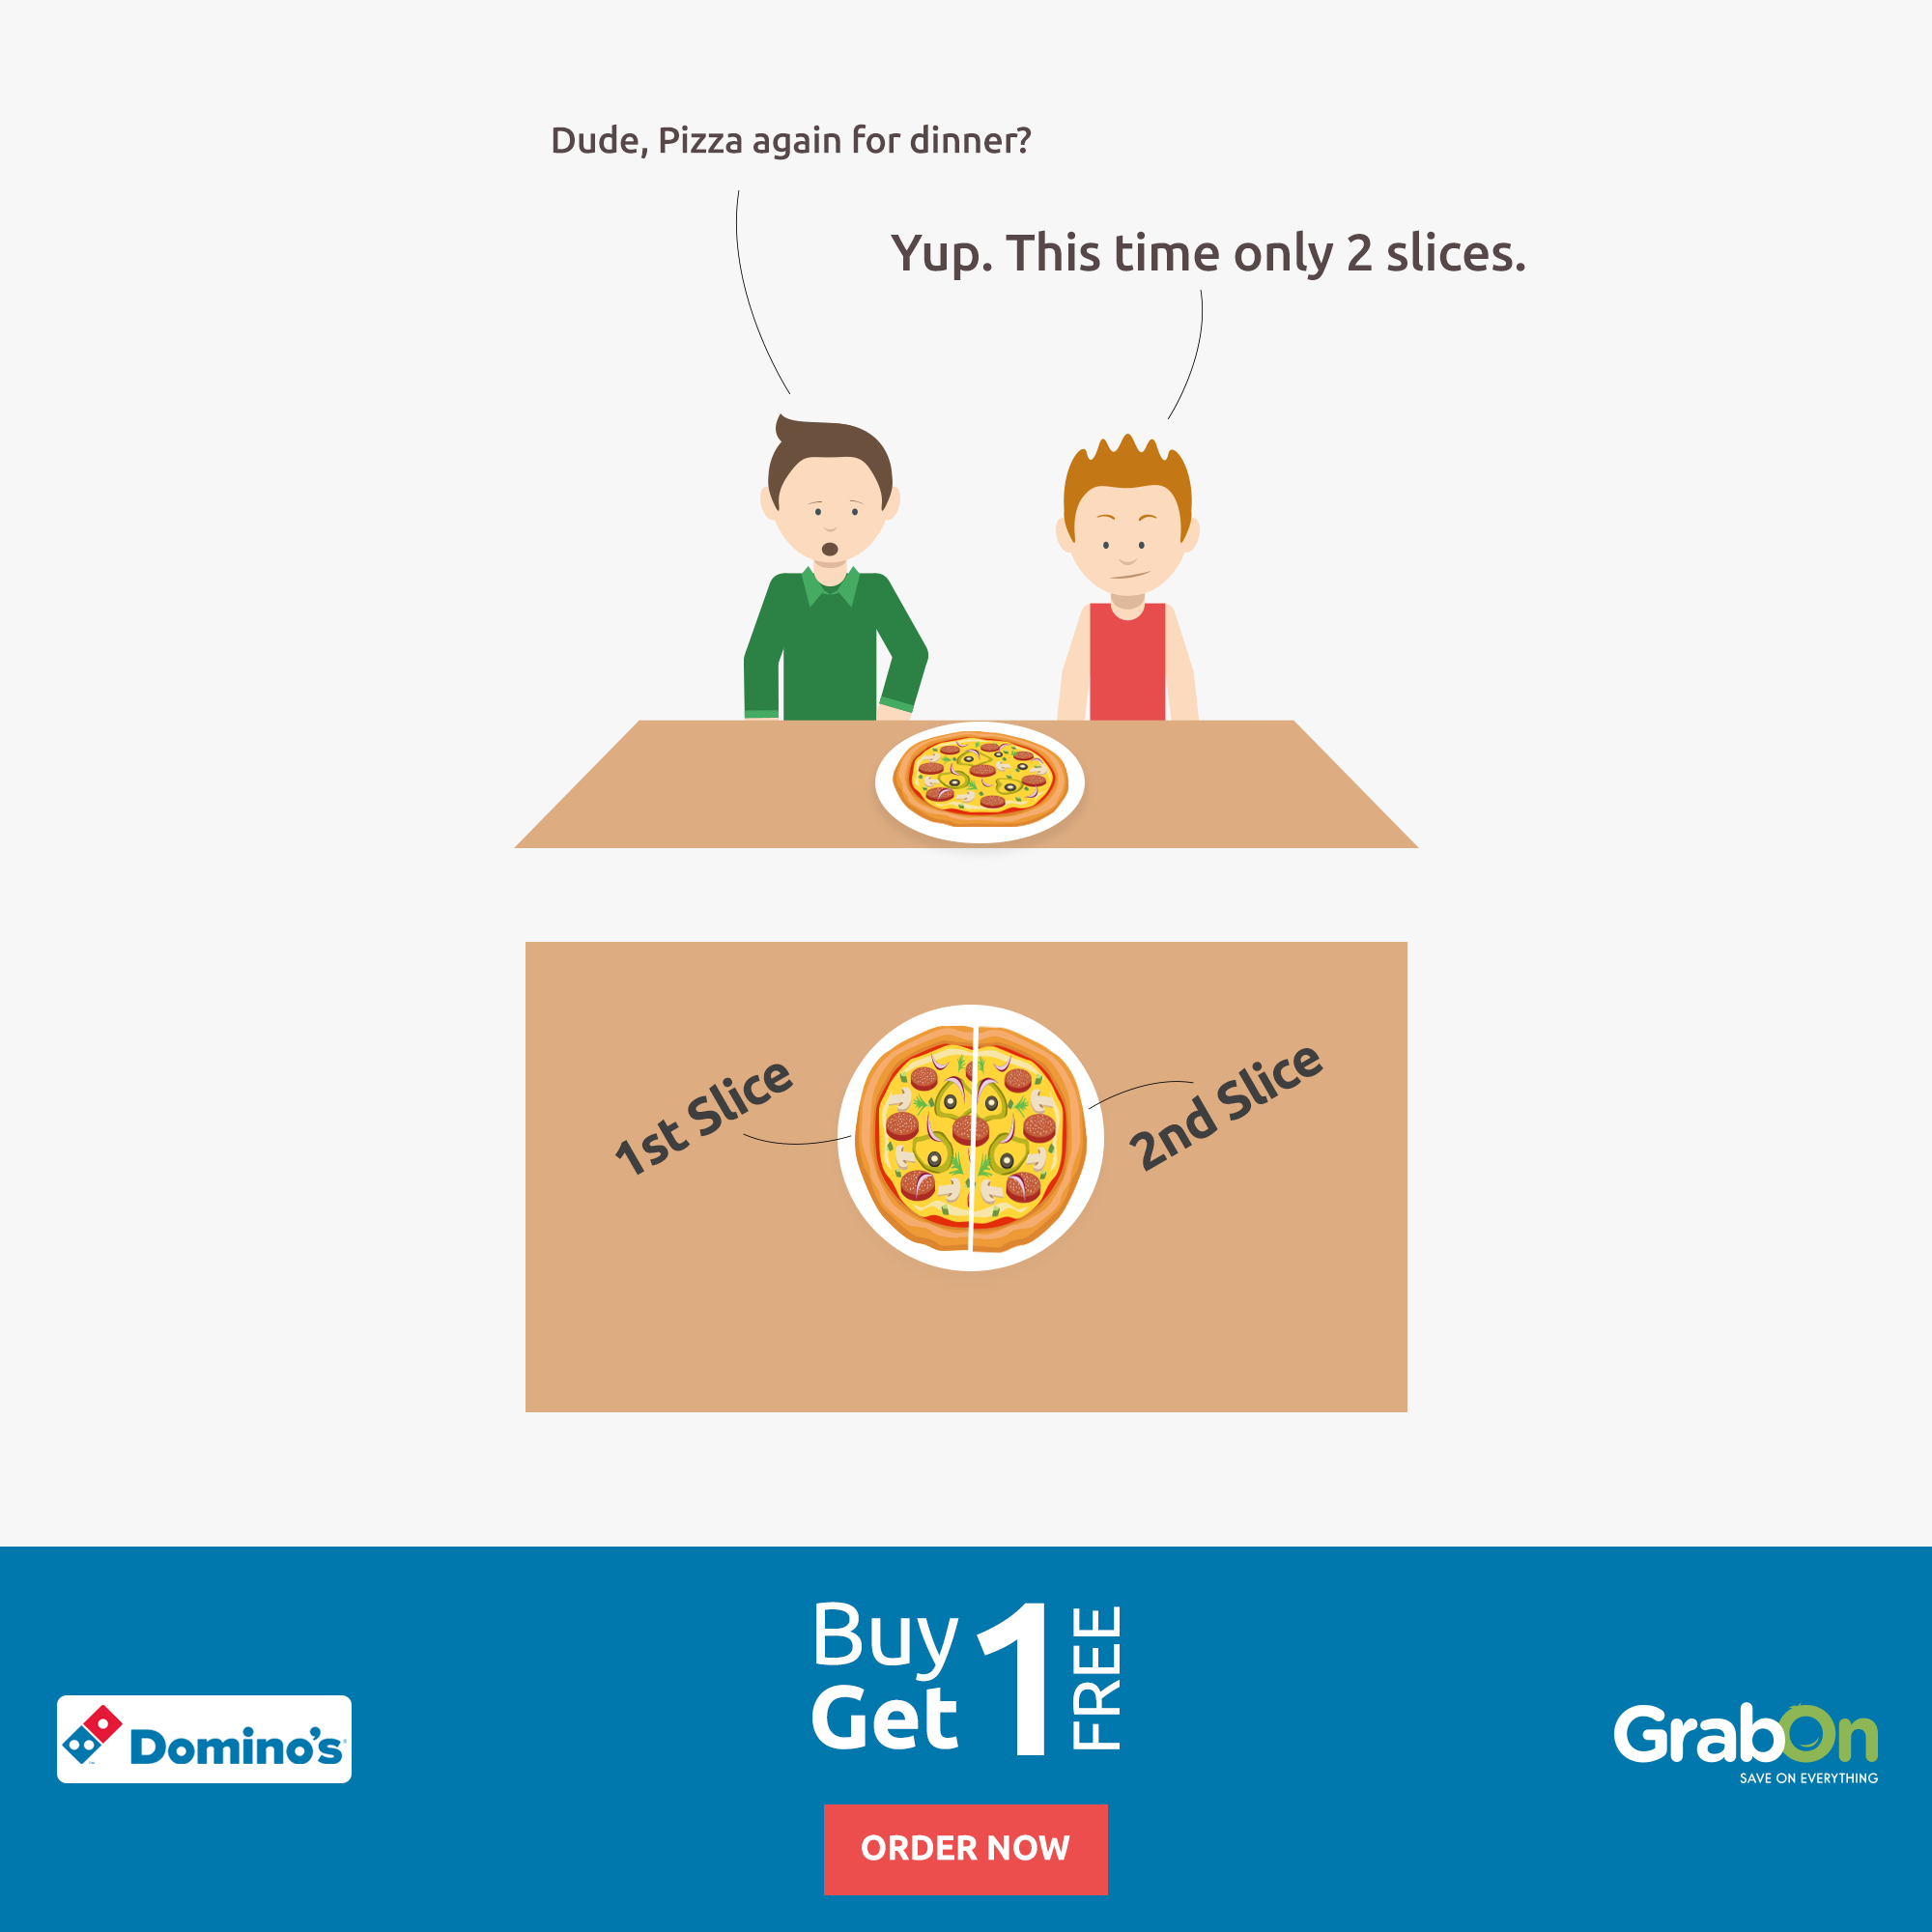 Always Hungry For Pizza? Now Buy One and Get One FREE